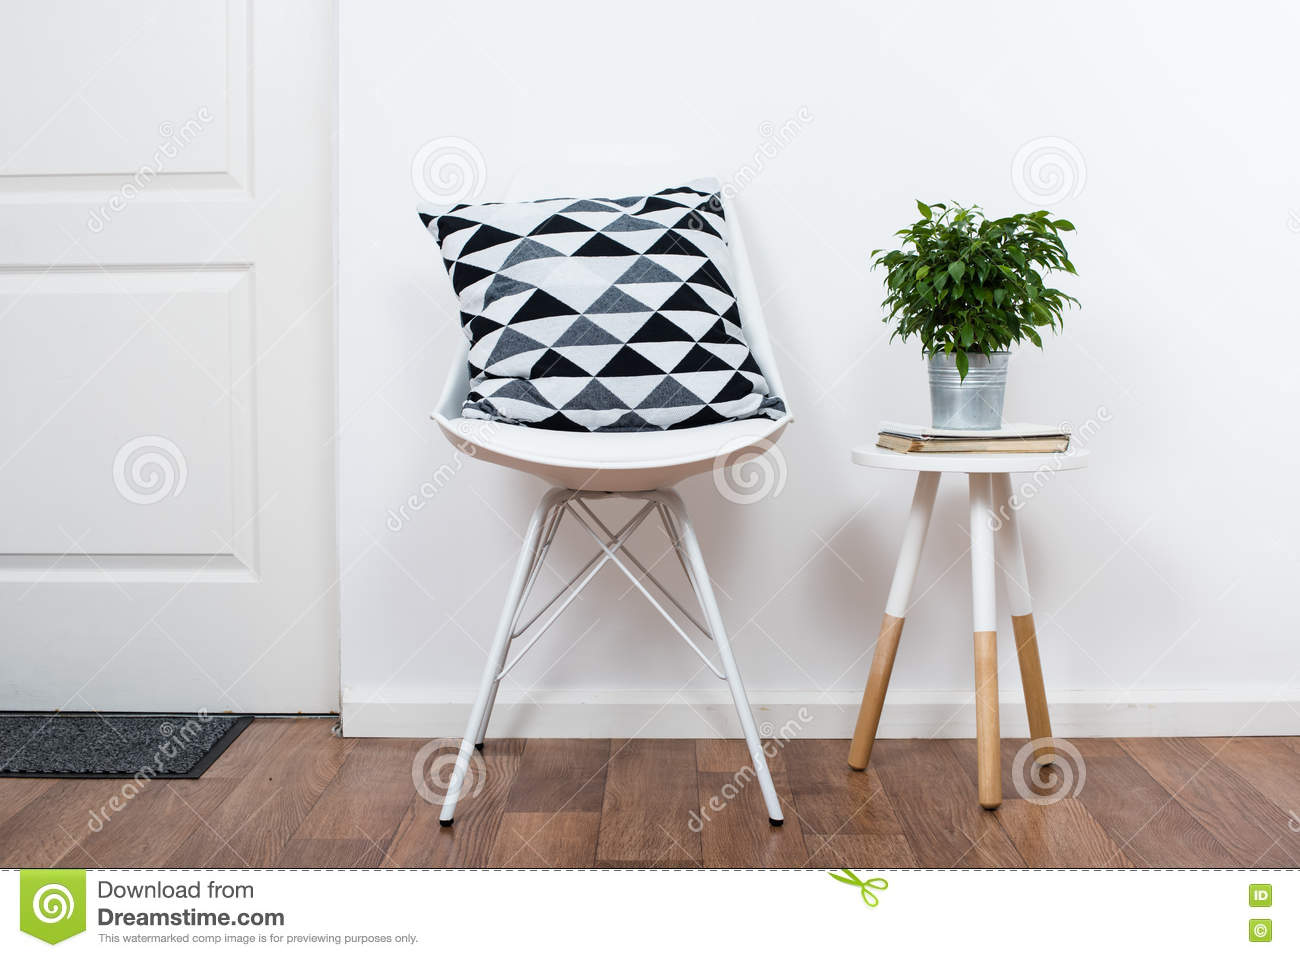 Scandinavian Home Interior Decoration Simple Decor Objects And Furniture Minimalist White Room